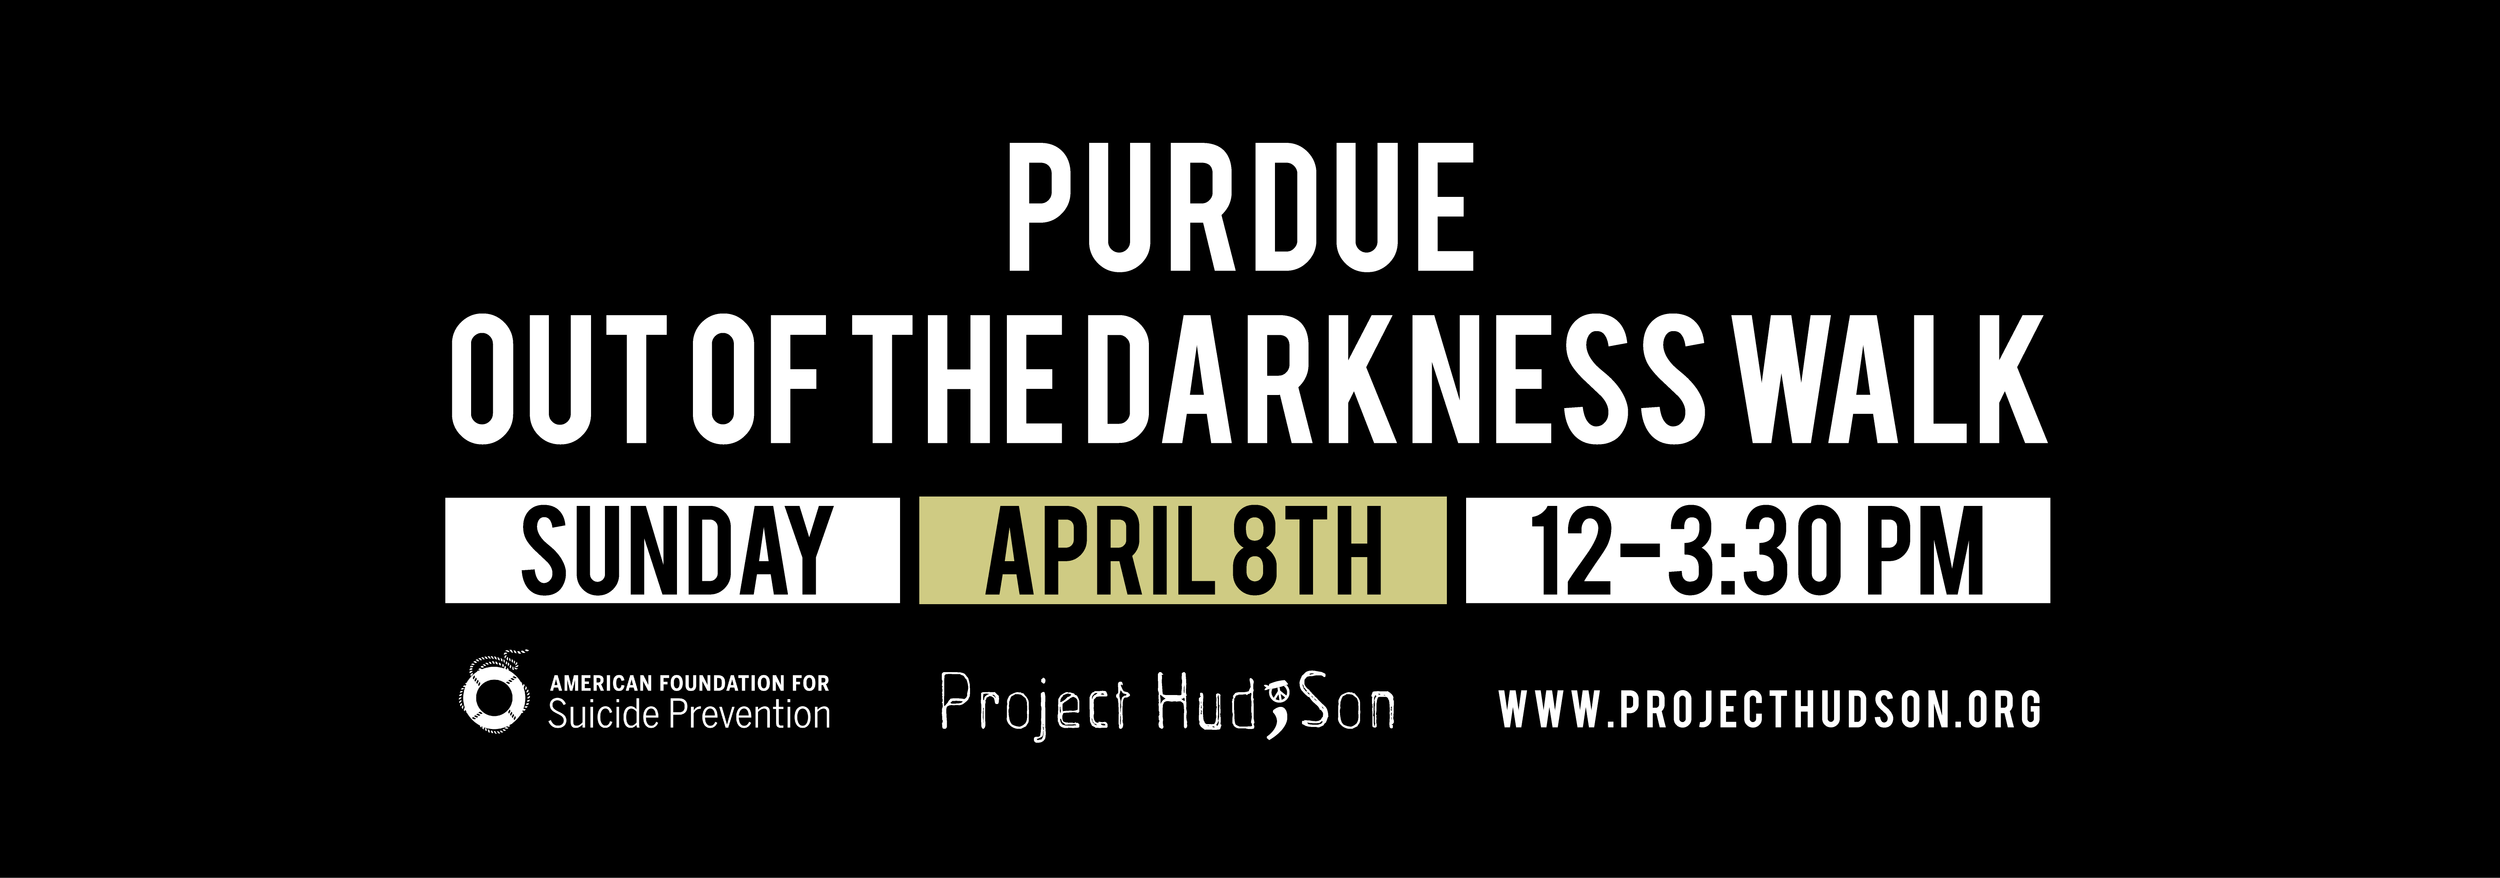 2018-purdue out of the darkness walk-17.png